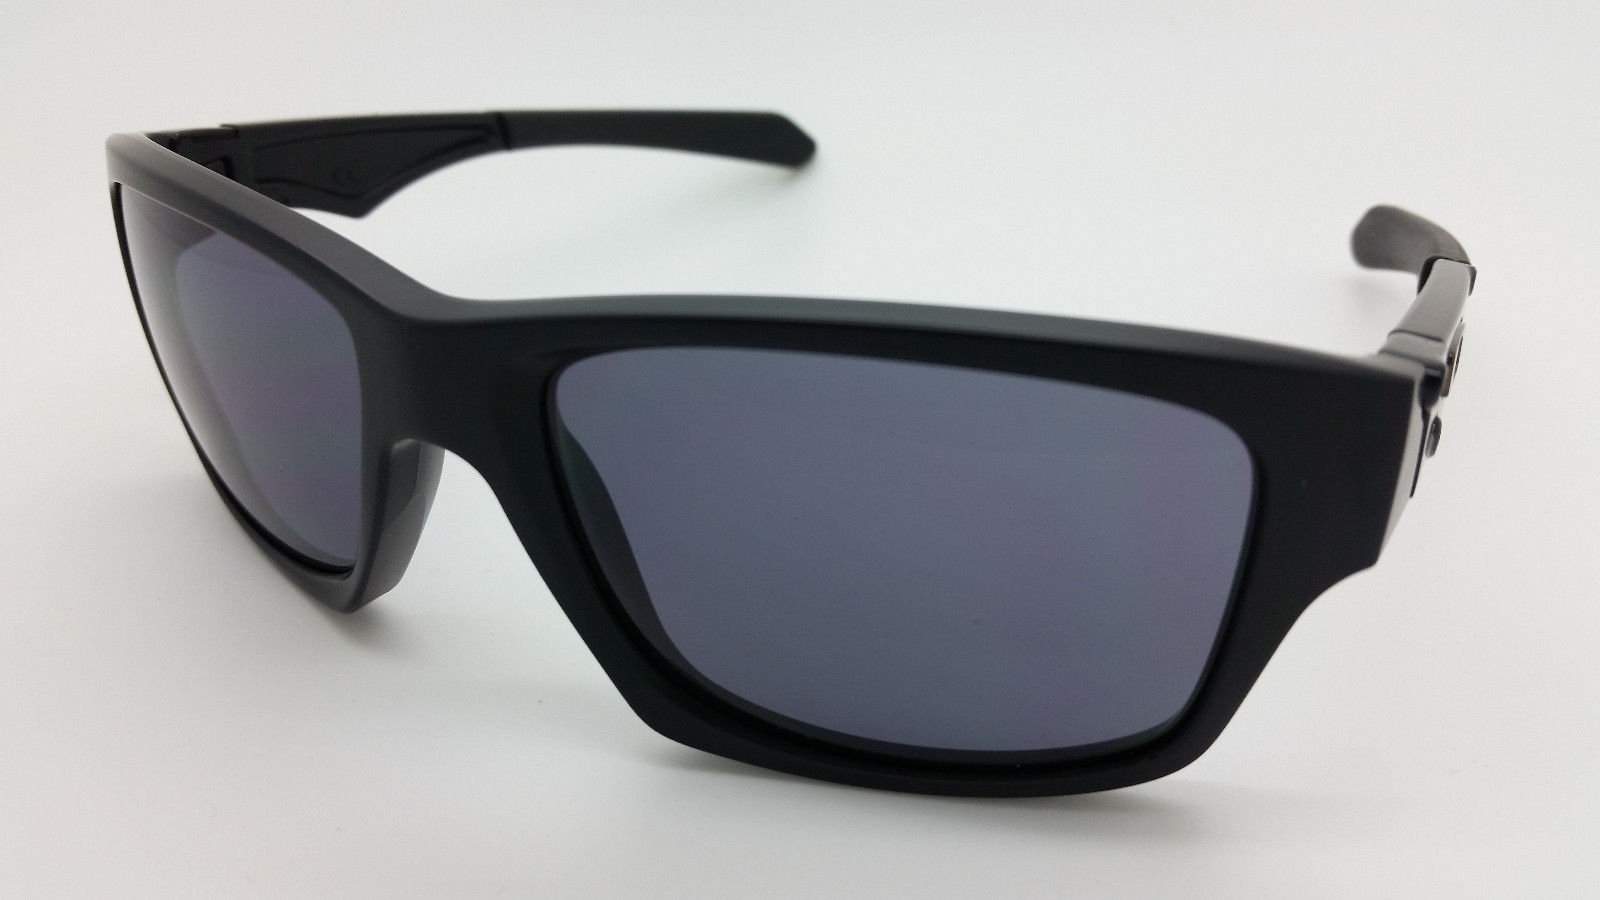 becf5f5813 Oakley Cycling Sunglasses Nz « Heritage Malta